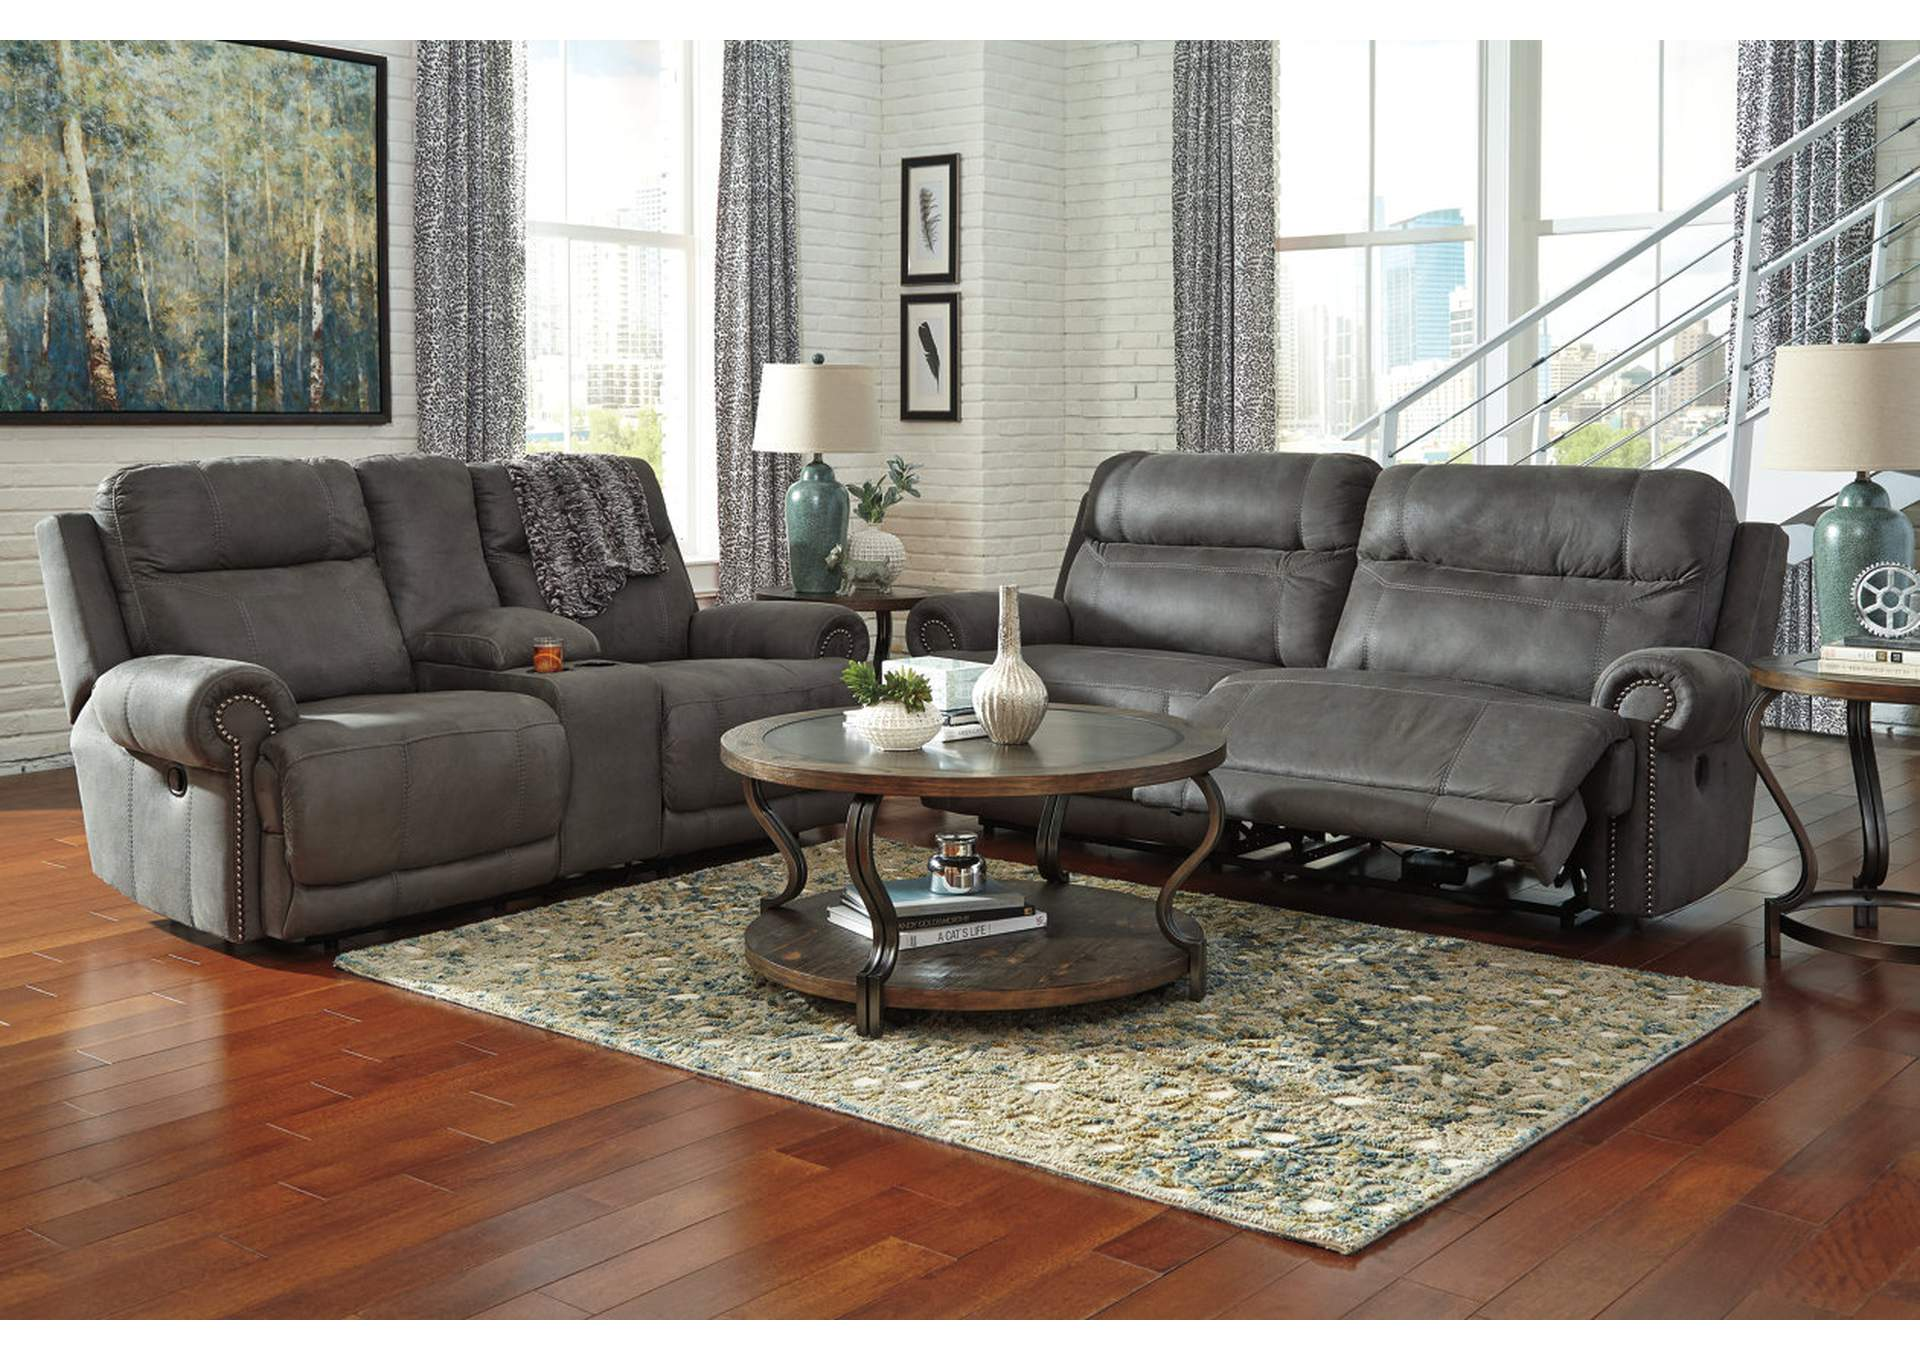 Fat Daddy\'s Furniture Austere Gray 2 Seat Reclining Sofa & Loveseat